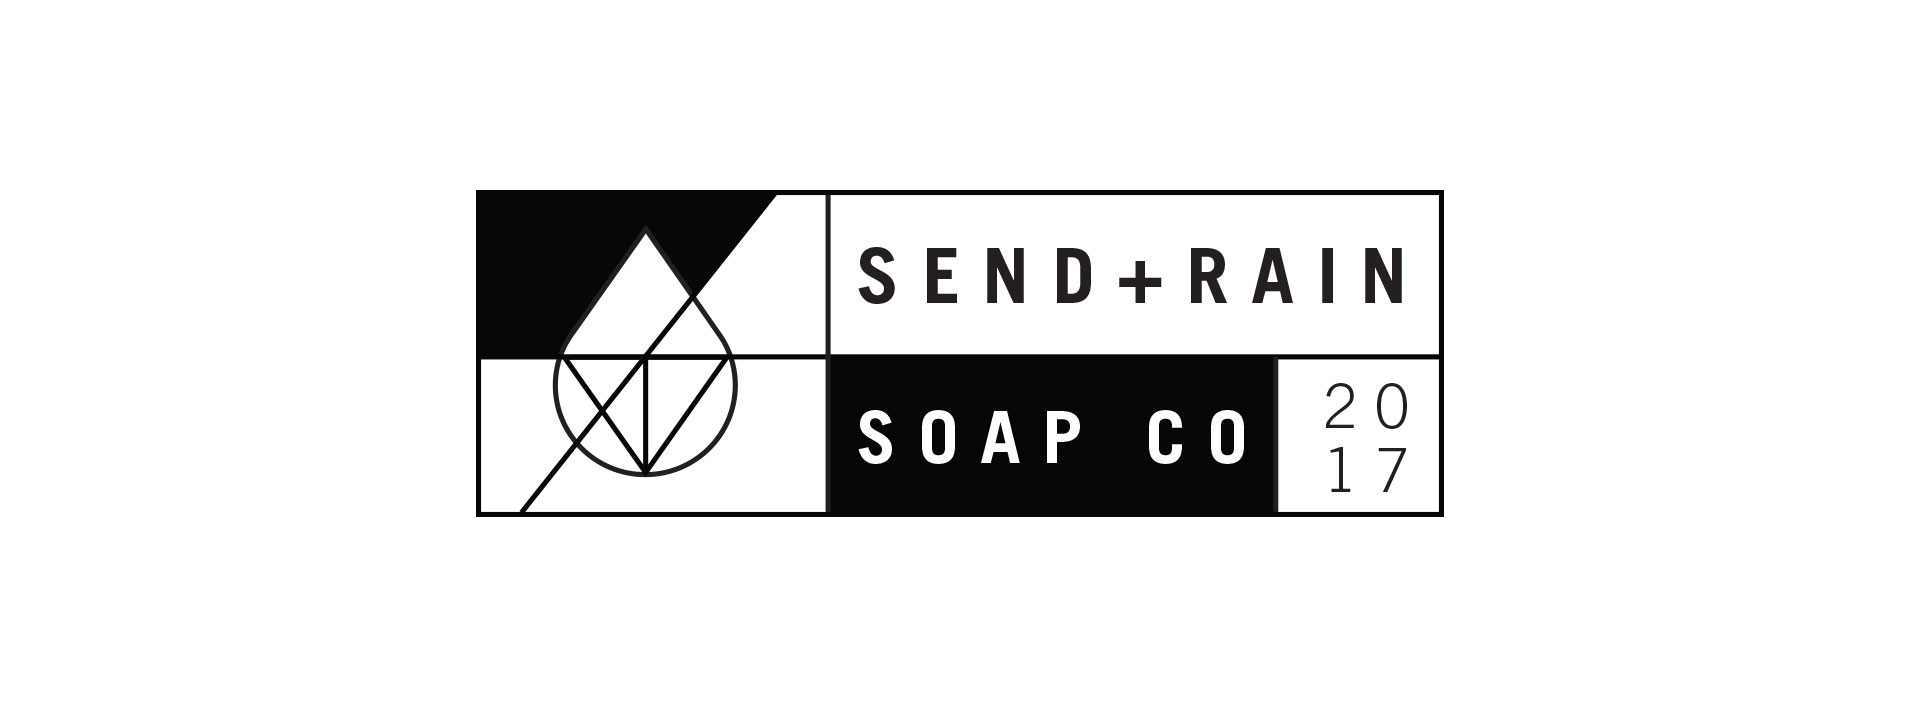 Send Rain soap company logo design alternative